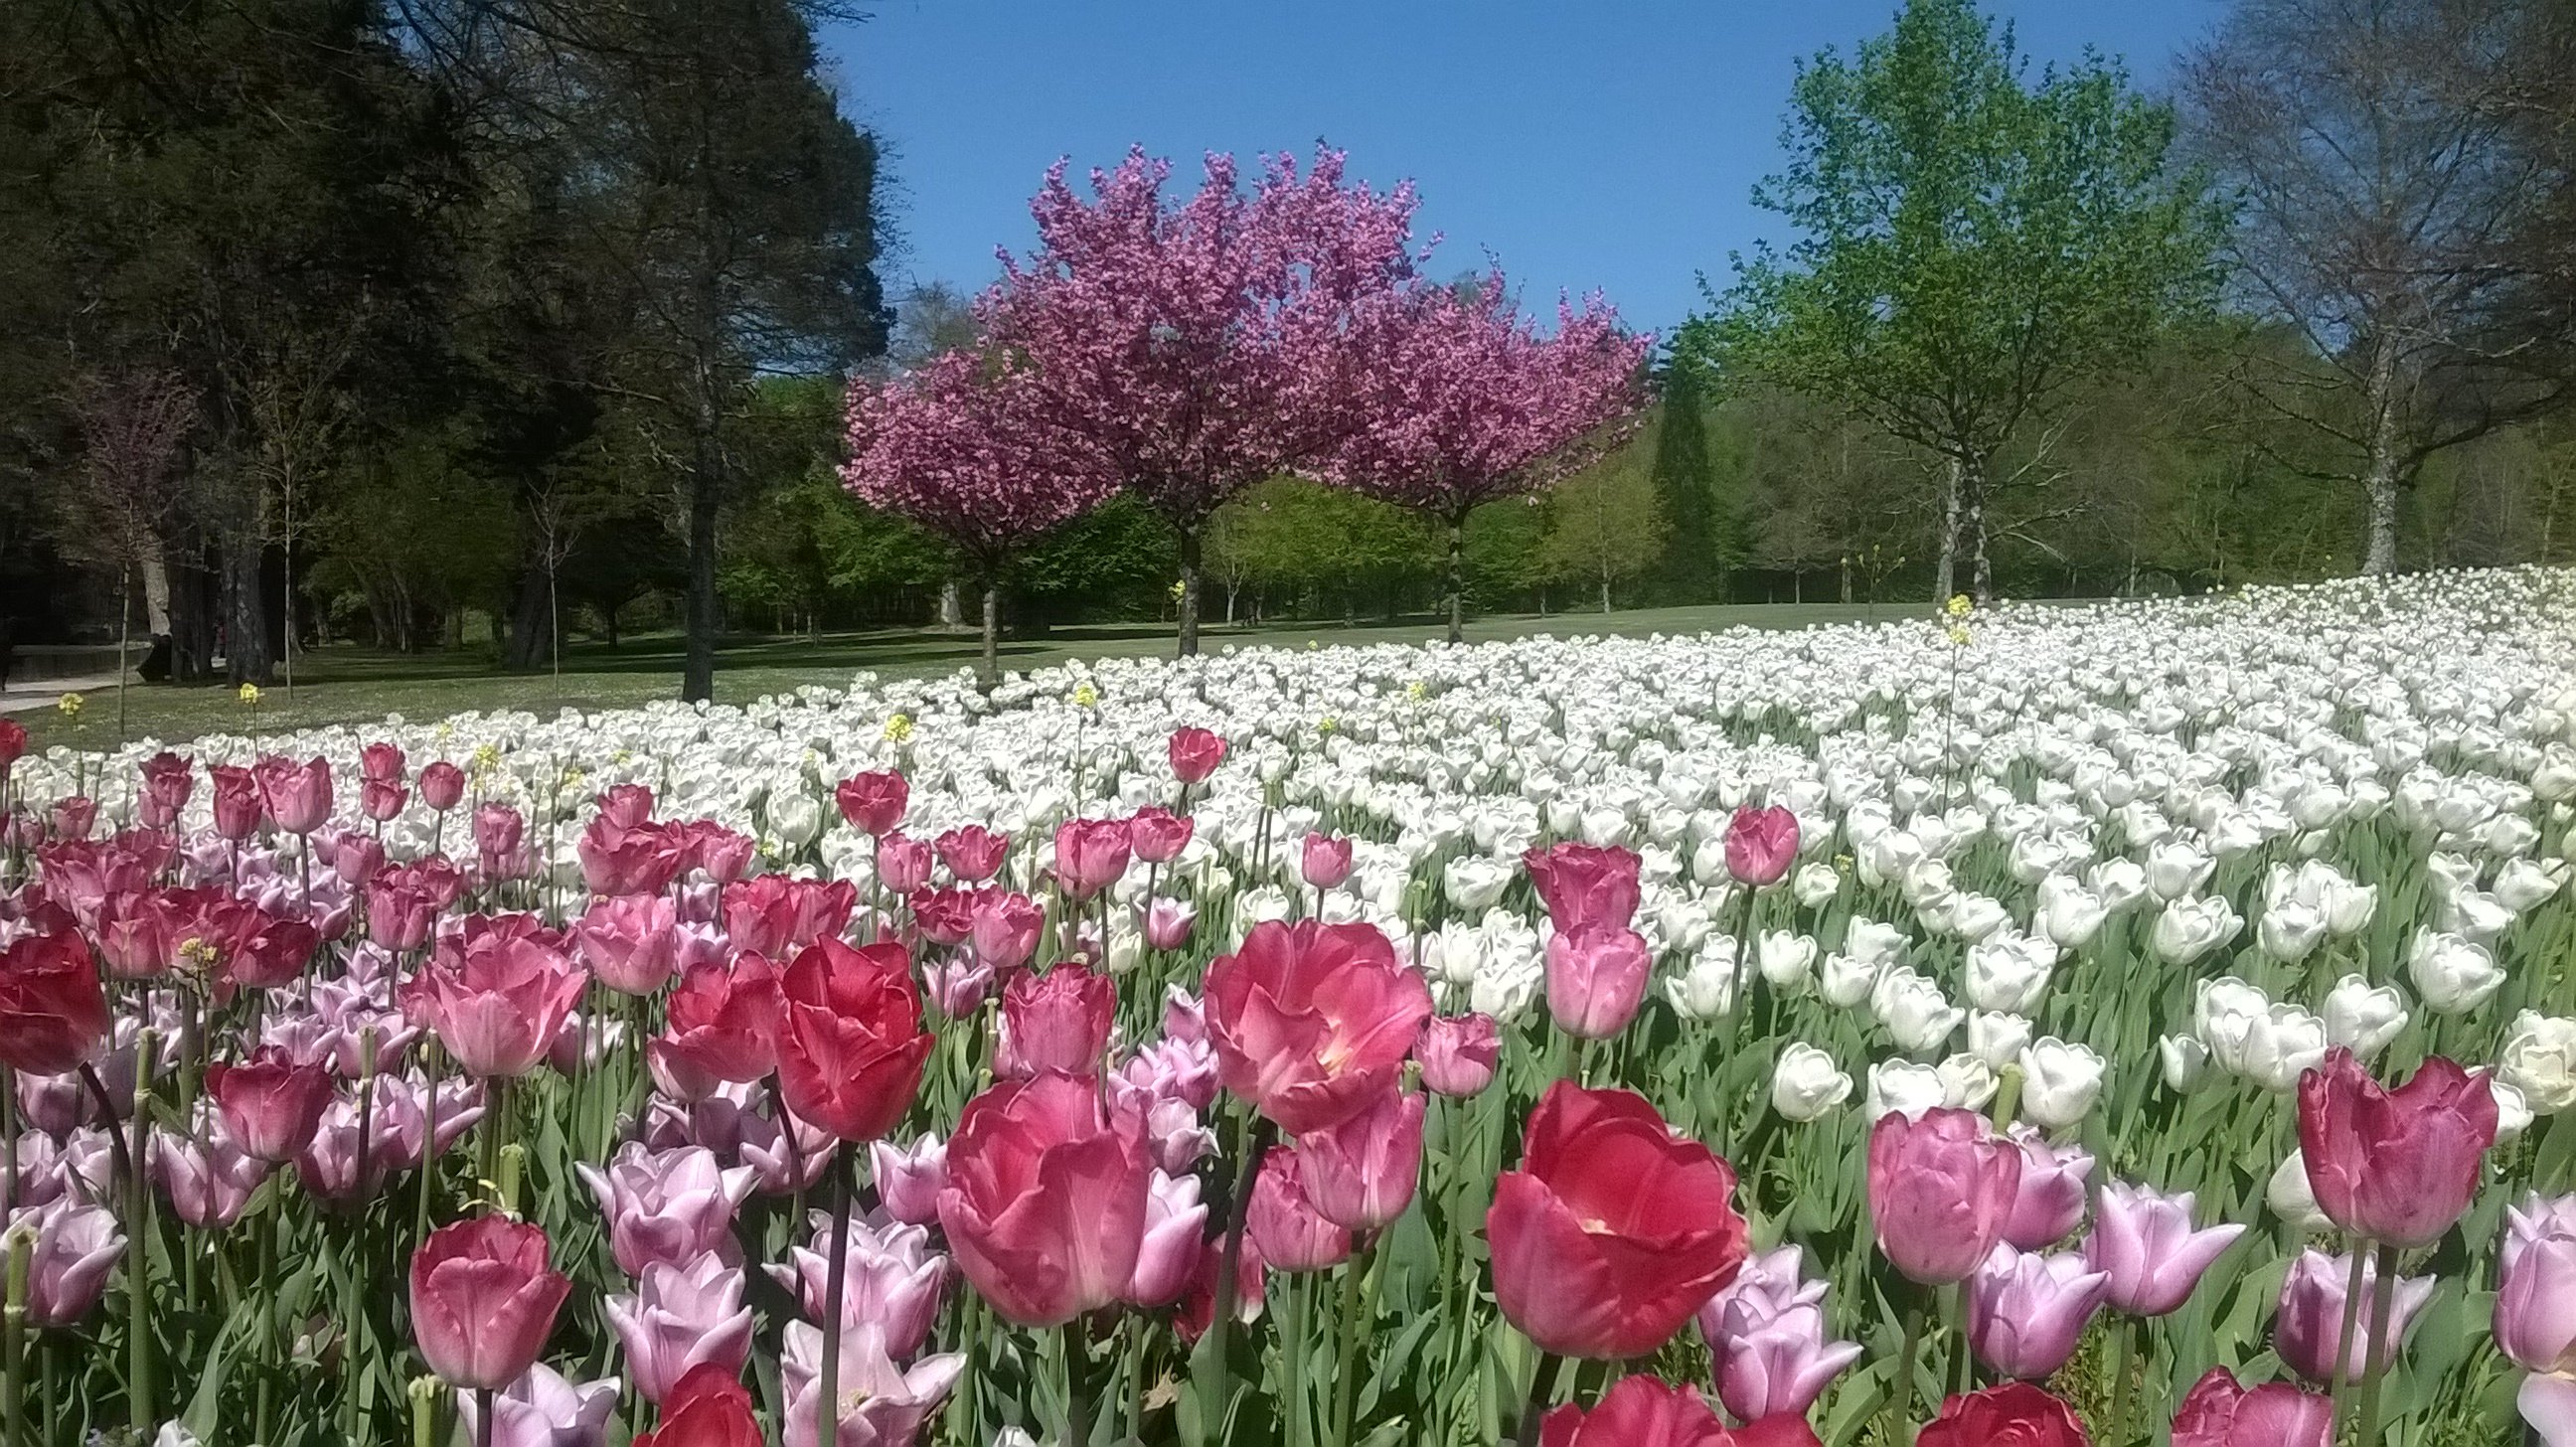 Tulips growing at Chateau Cheverny